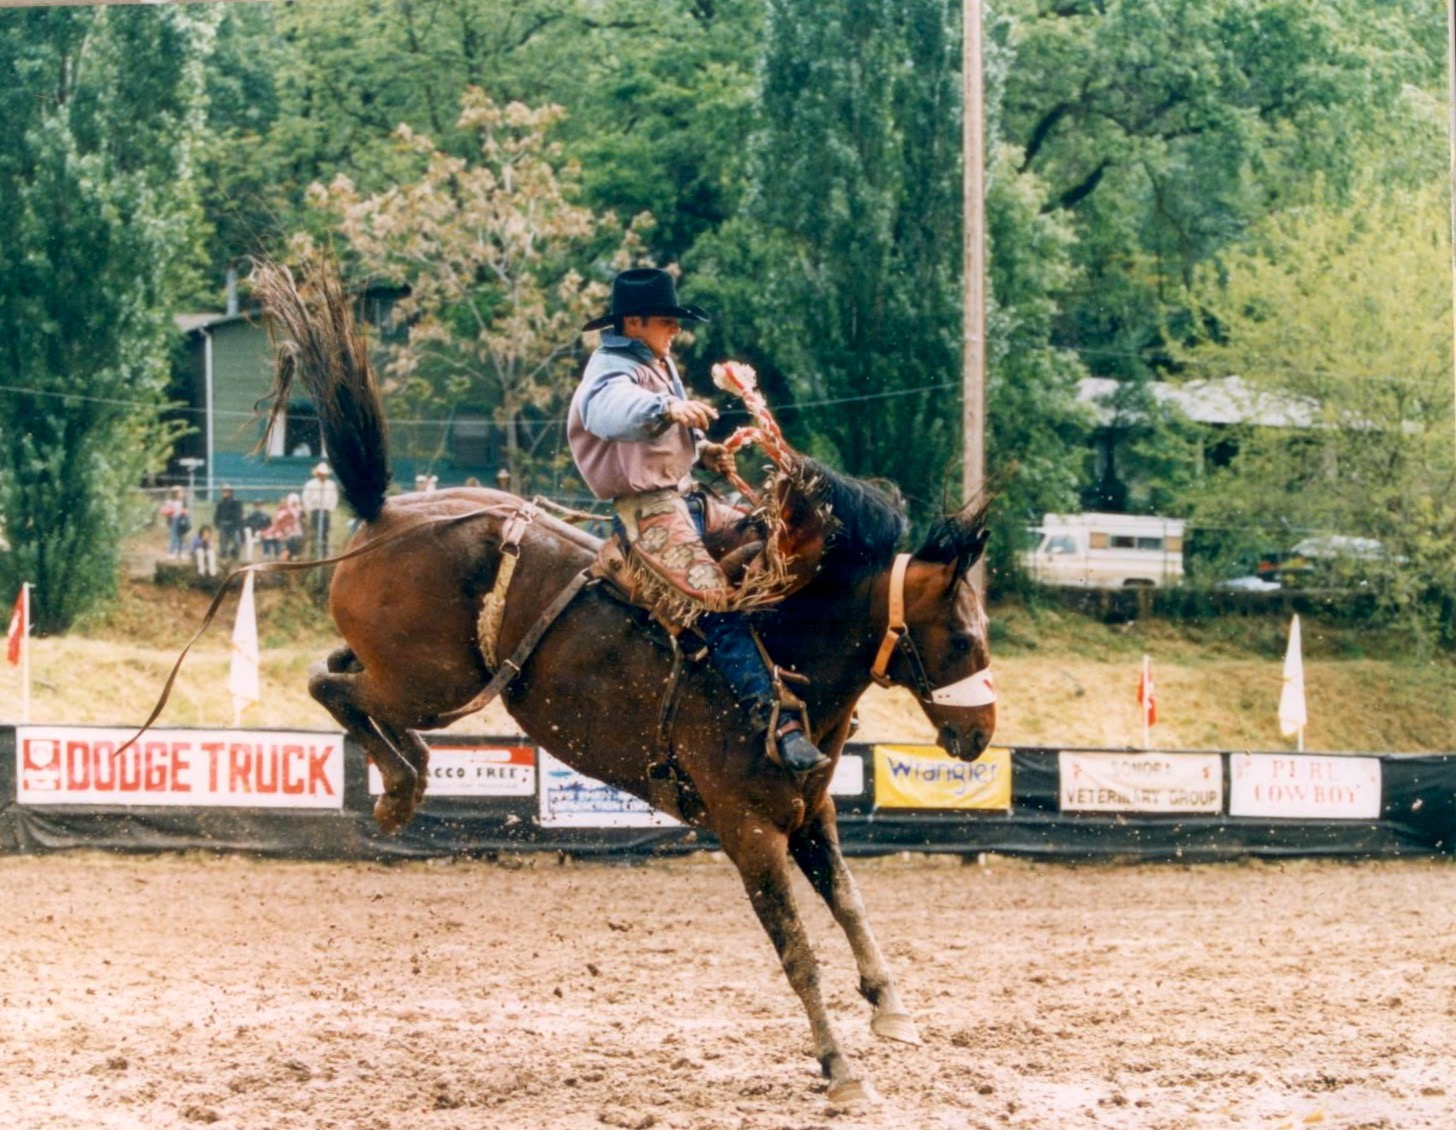 On NFR bronc, Rock n' Ronnie, owned by Western Rodeos in Sonora, California. (Photo courtesy of Steve Stevens)